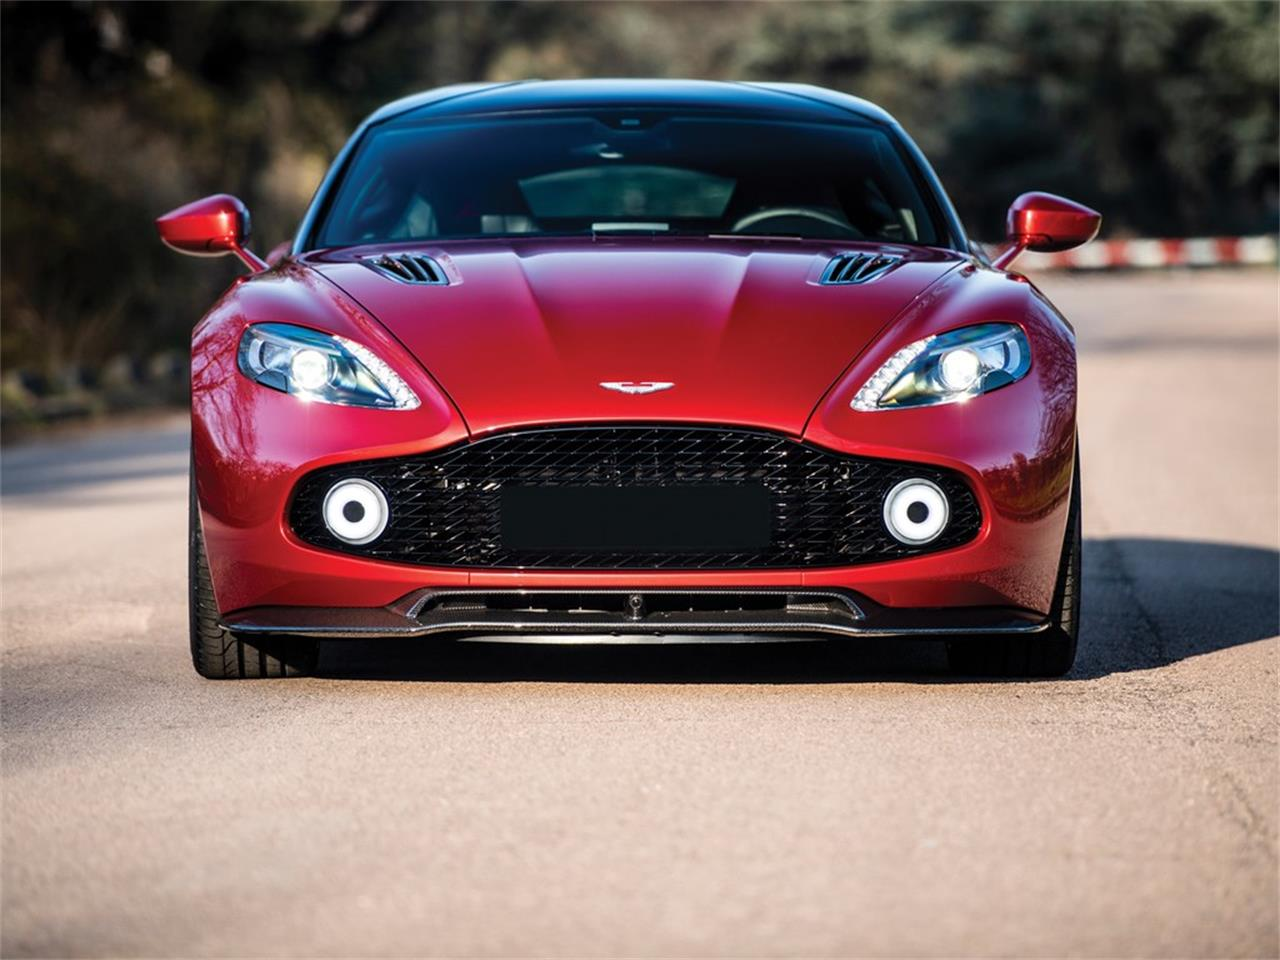 2019 Aston Martin Vanquish for sale in Cernobbio, Other – photo 8